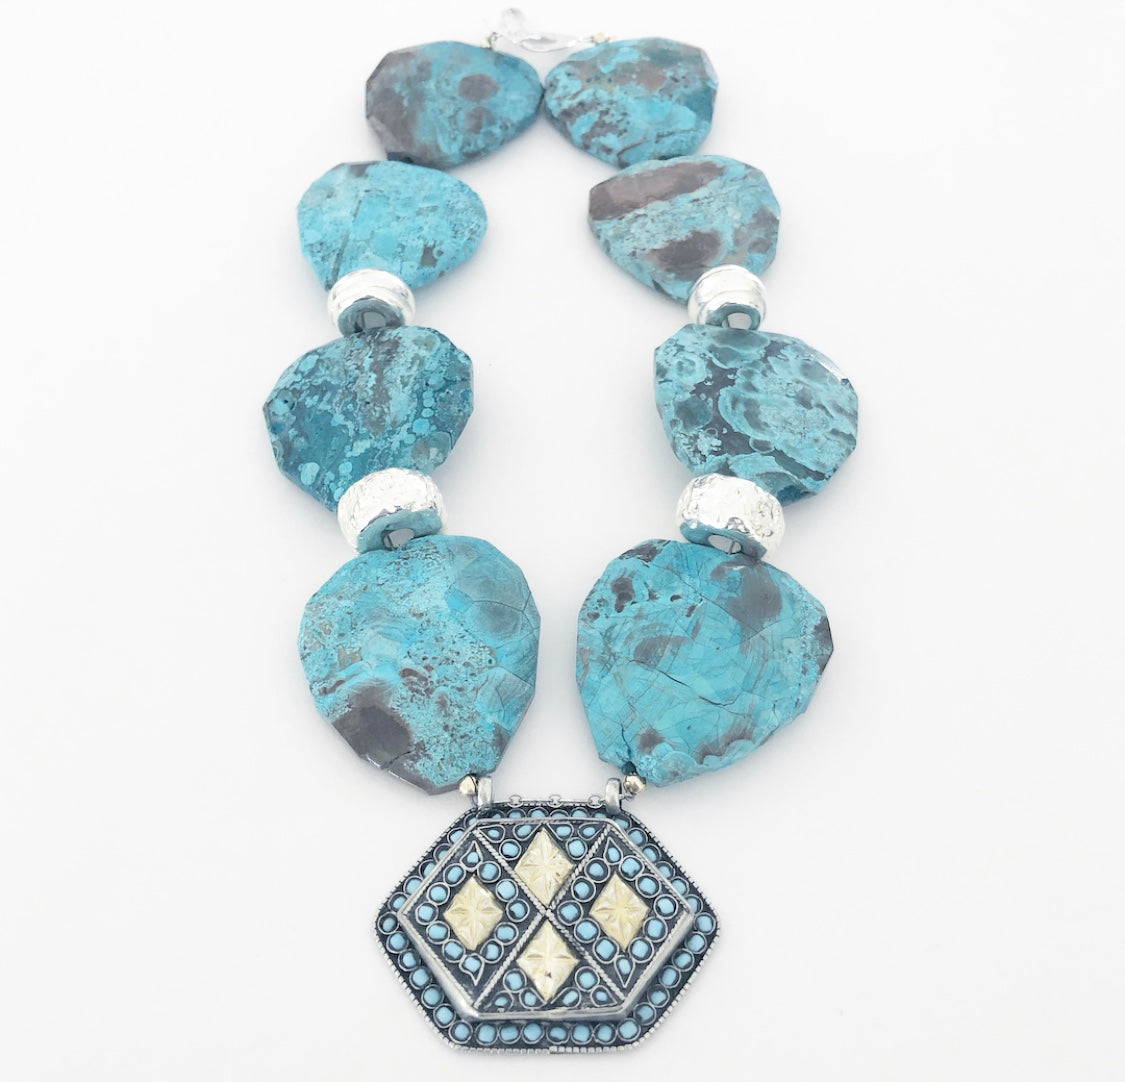 Heather Matjasic Turquoise Gold Silver Necklace afghan mykonos judith liegeois designs naples florida